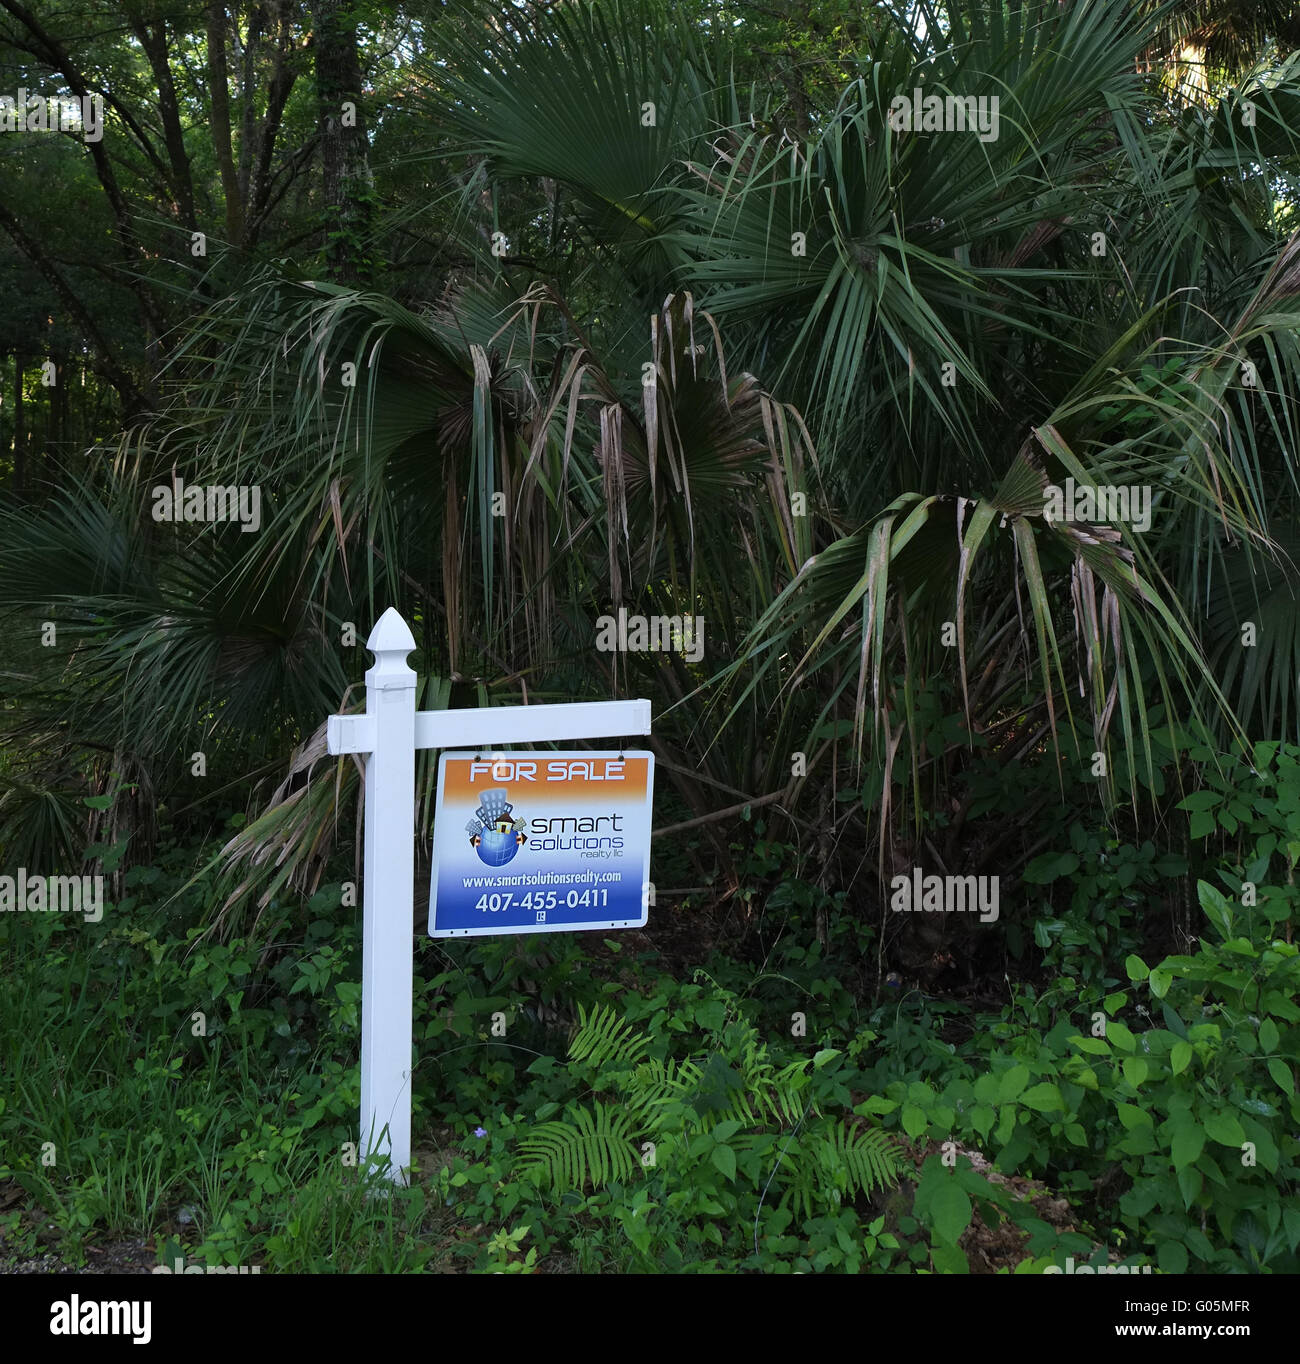 Undeveloped real estate for sale in Florida. April 2016 - Stock Image